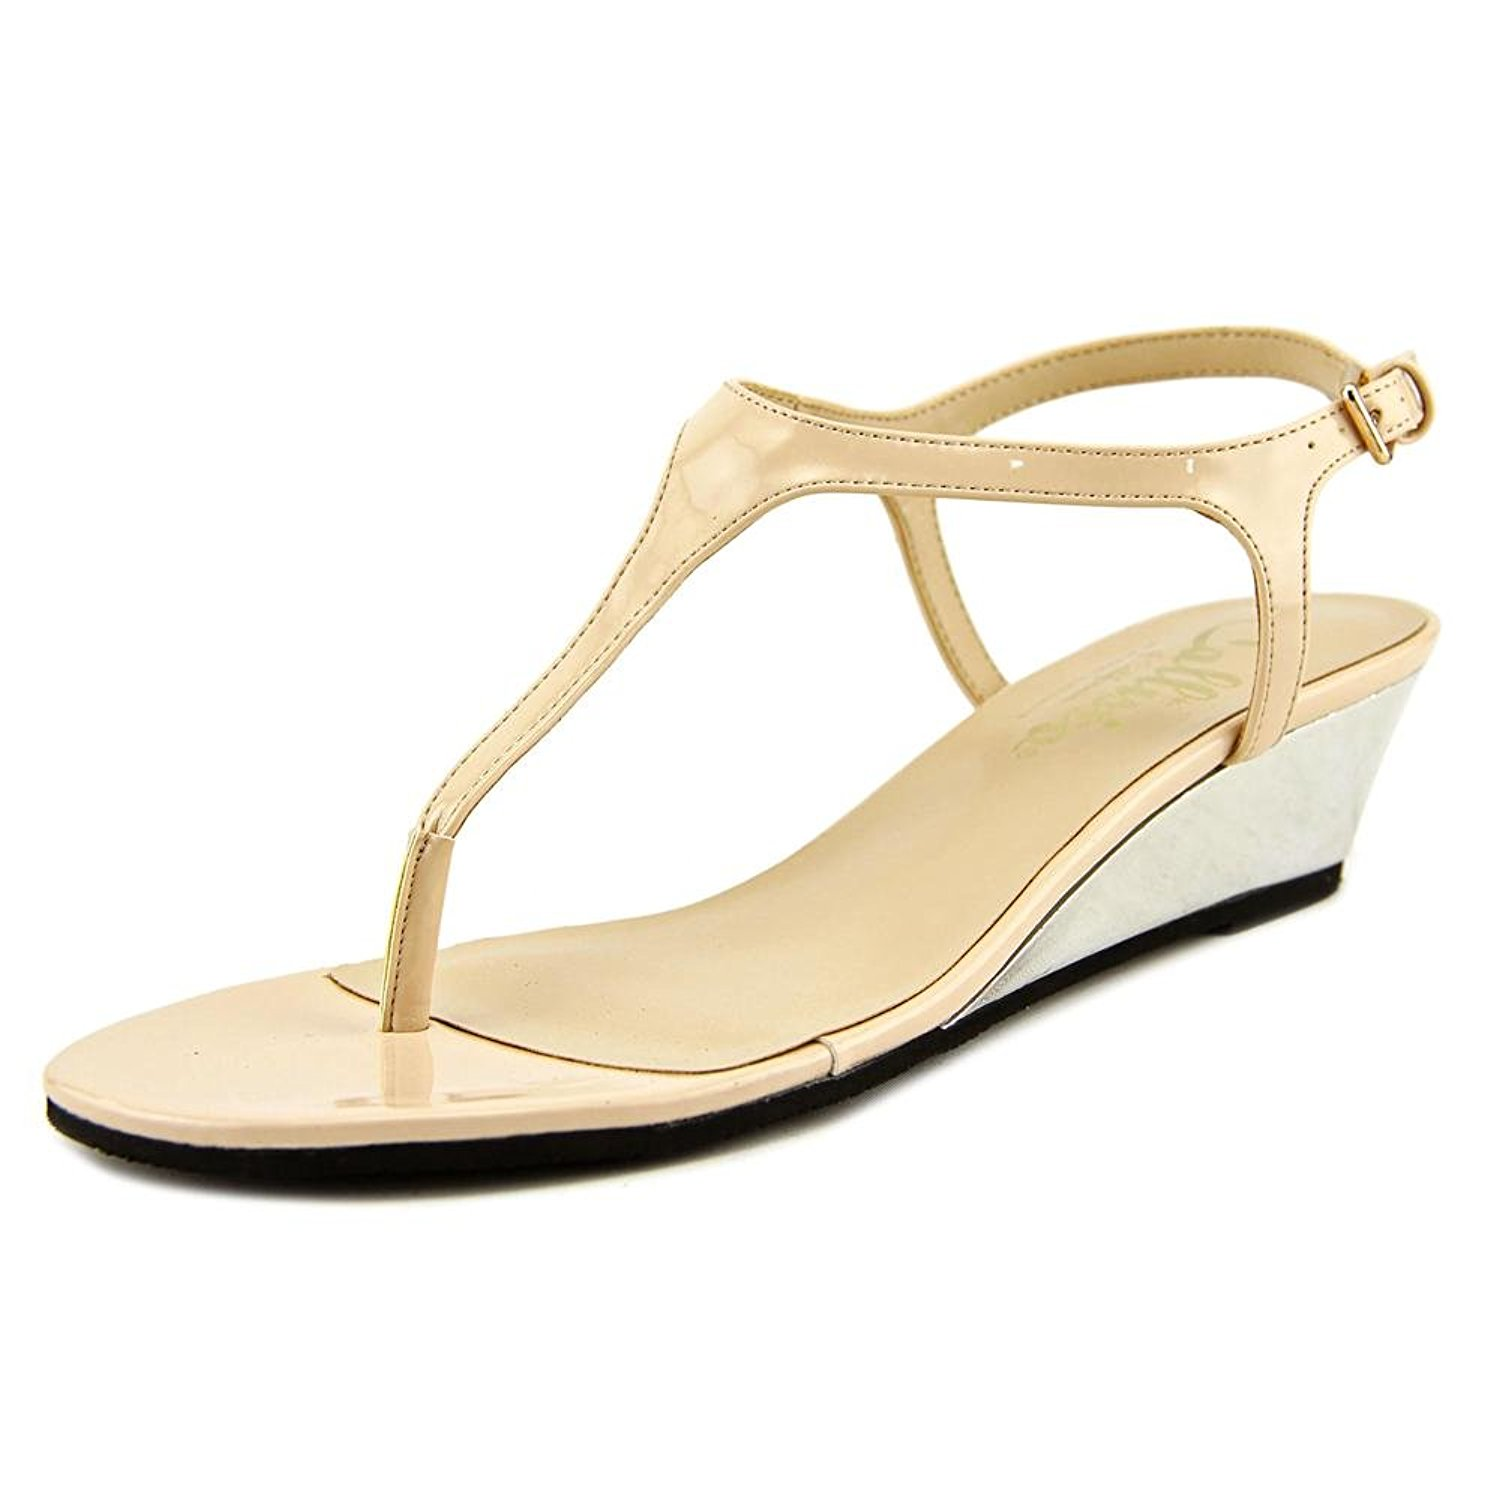 Callisto Womens Spring Open Toe Casual Ankle Strap, Nude Patent, Size 8.0